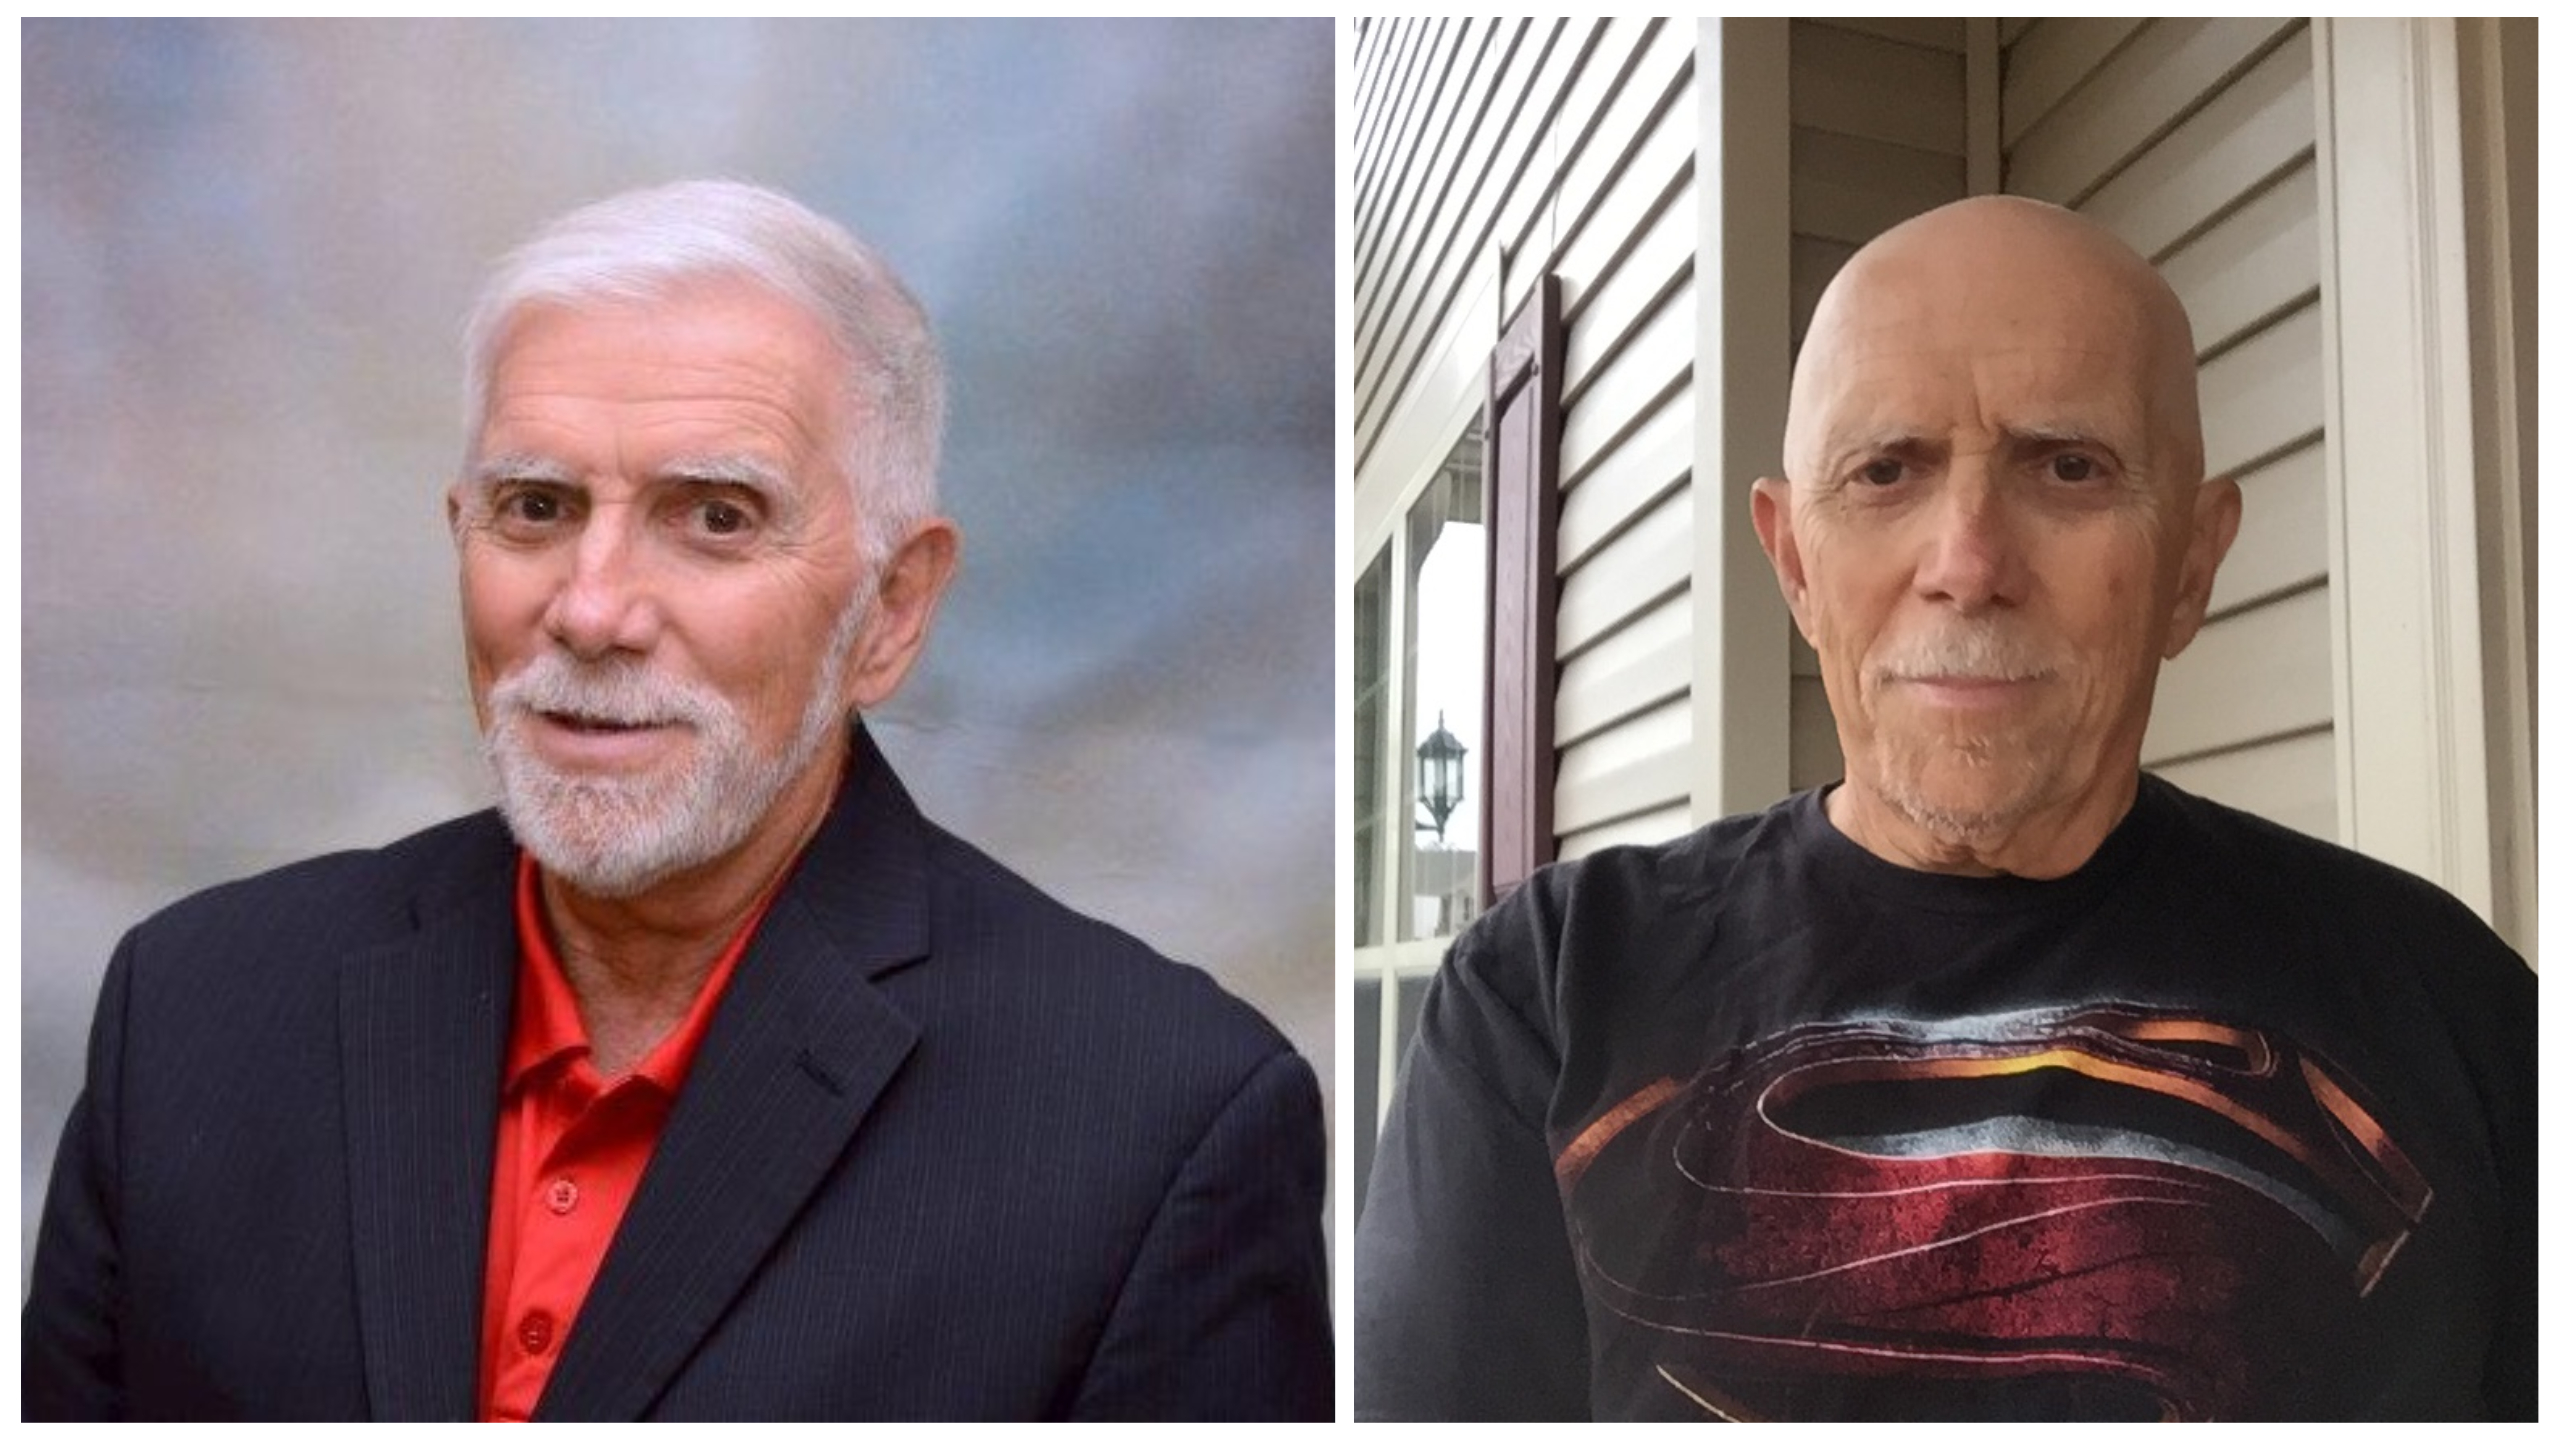 72-year old Henry Povinelli was diagnosed with sarcoma, a rare soft tissue cancer, in November 2019. He currently participates in a sarcoma clinical trial funded by the Paula Takacs Foundation. This trial has since shown promising results.